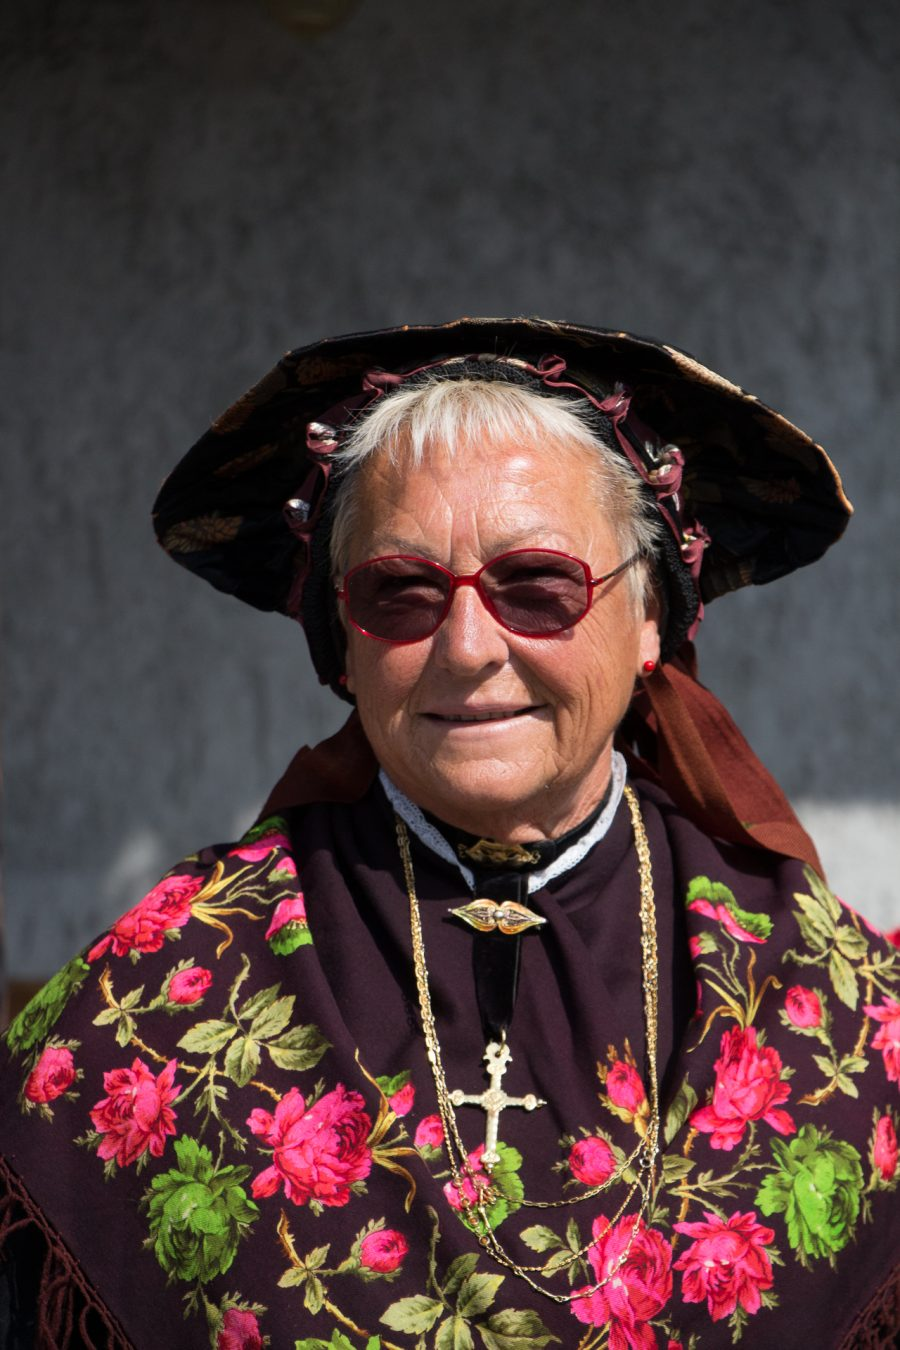 Lady in traditional dress for the festivity of Allevè, 2018